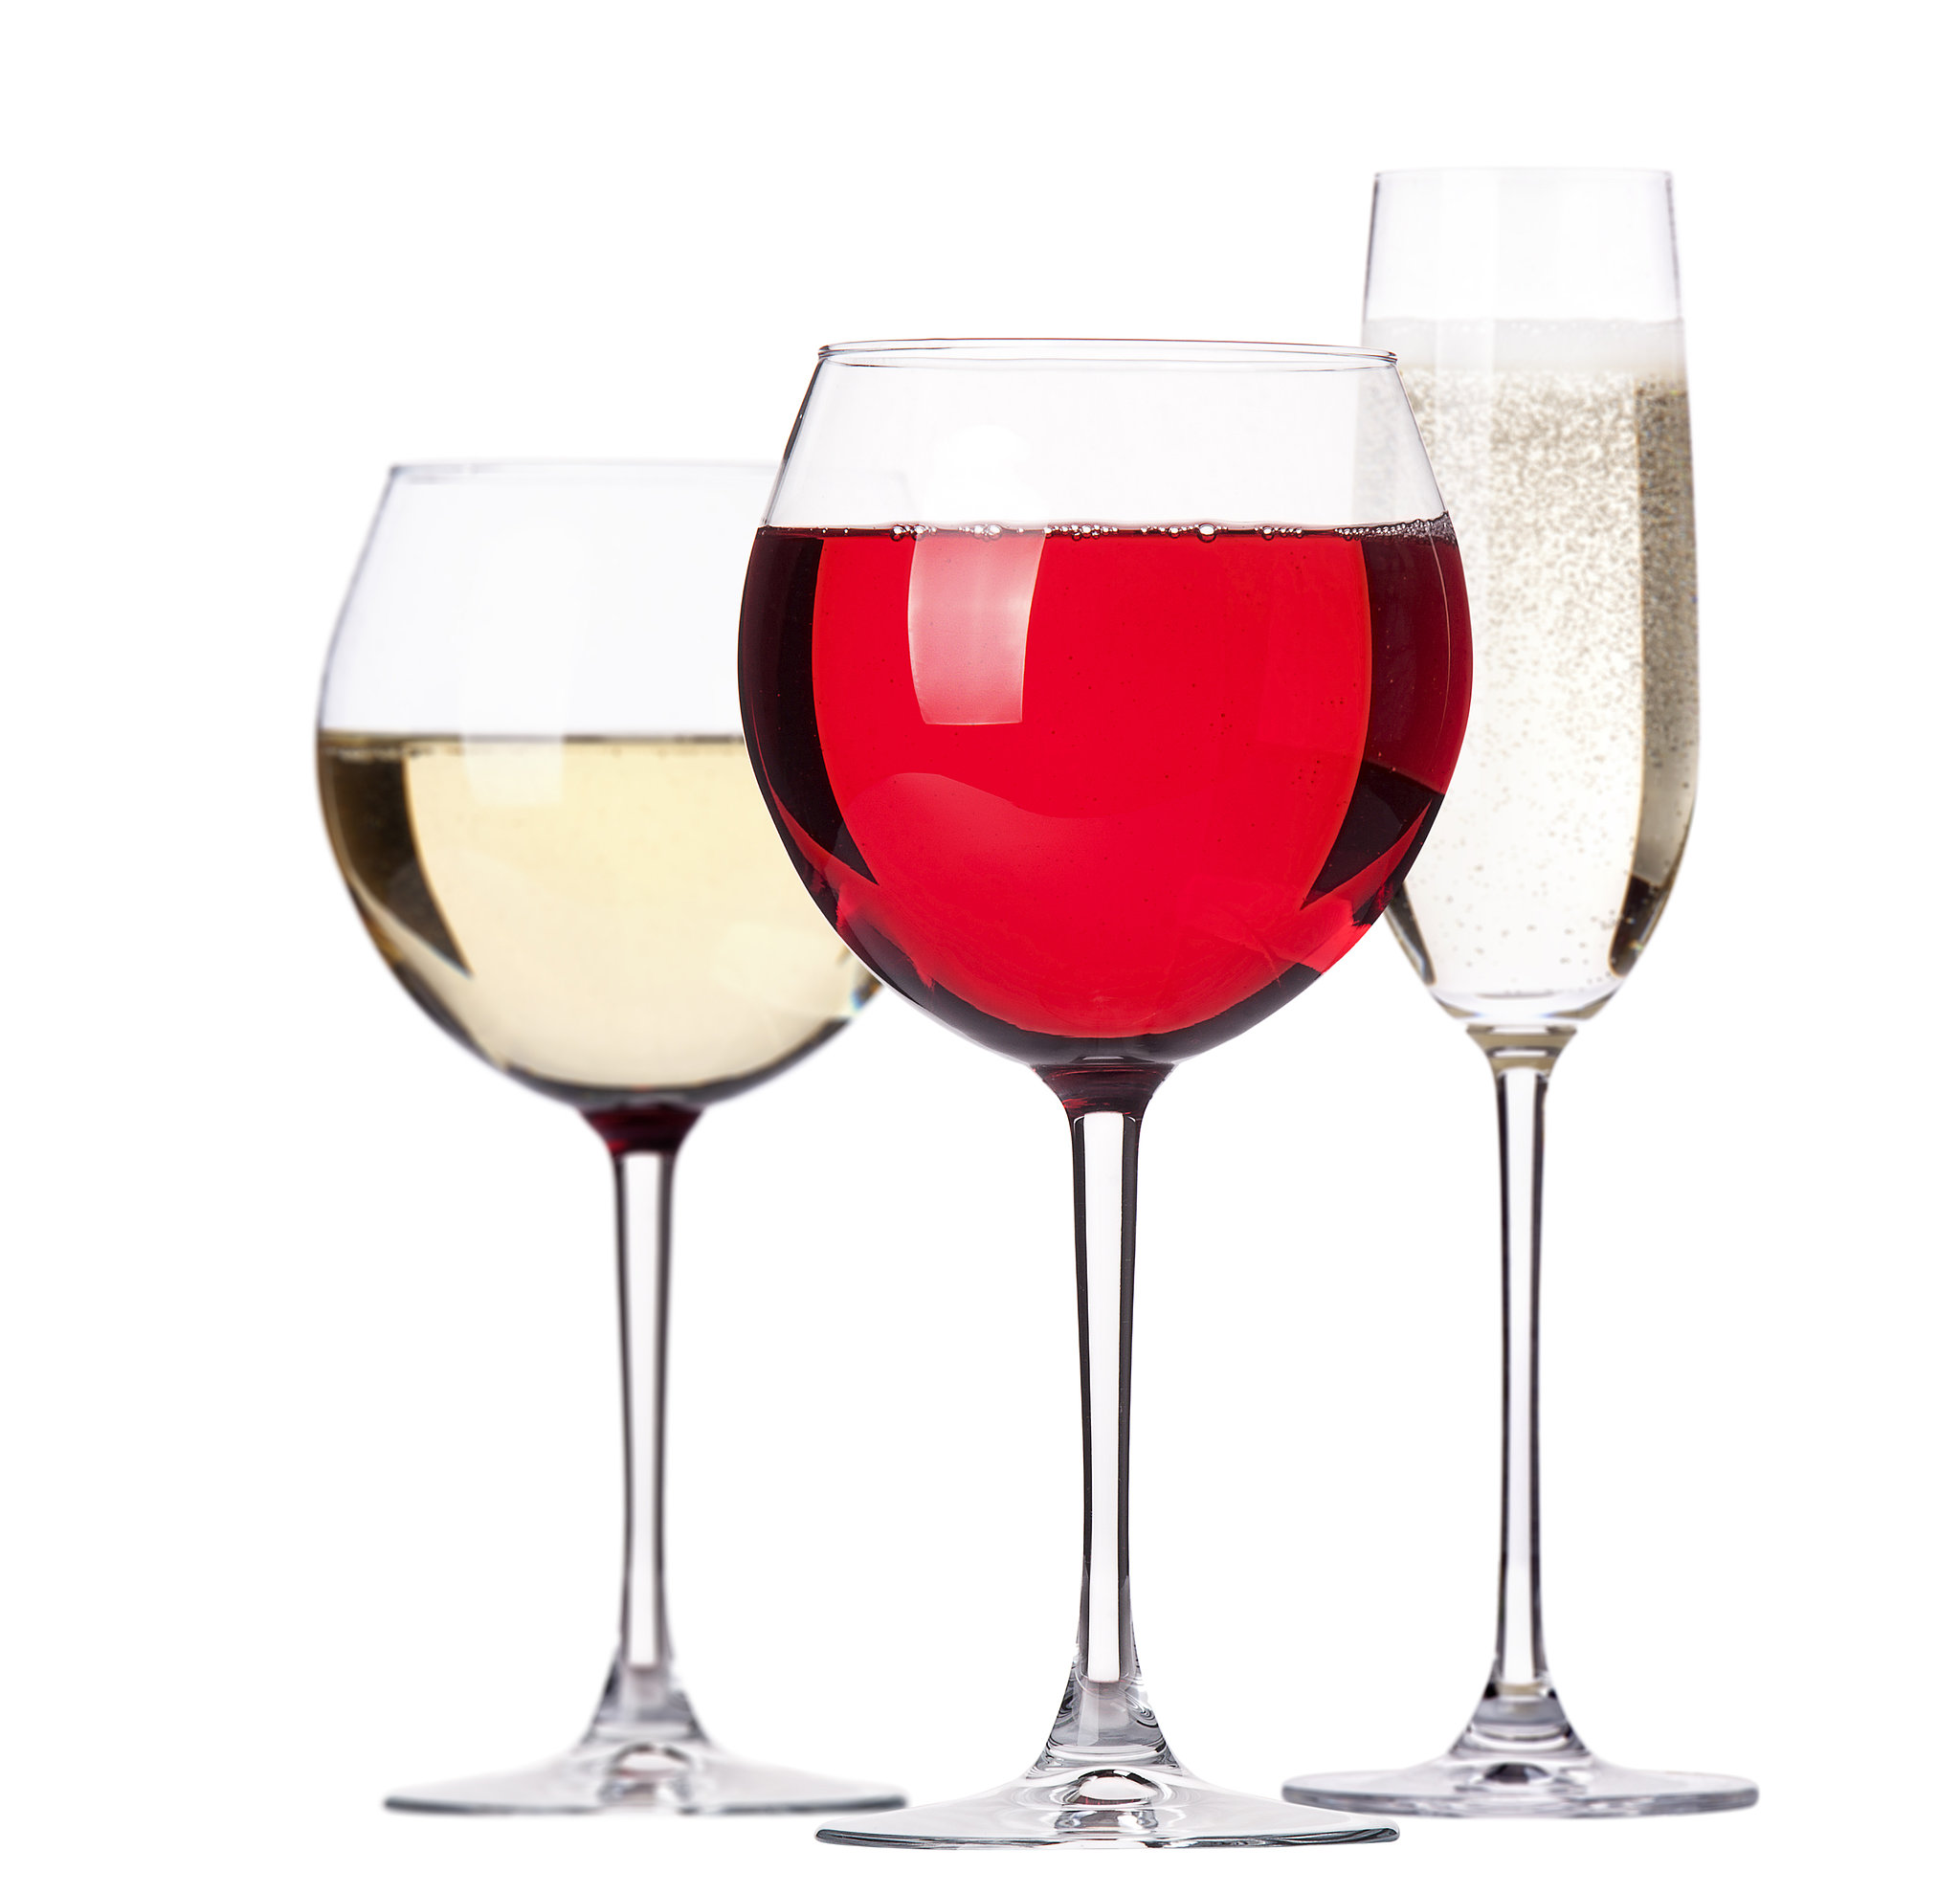 Http Www Popsugar Com Fitness Pros Cons Drinking Red Wine White Wine Champagne 14656661